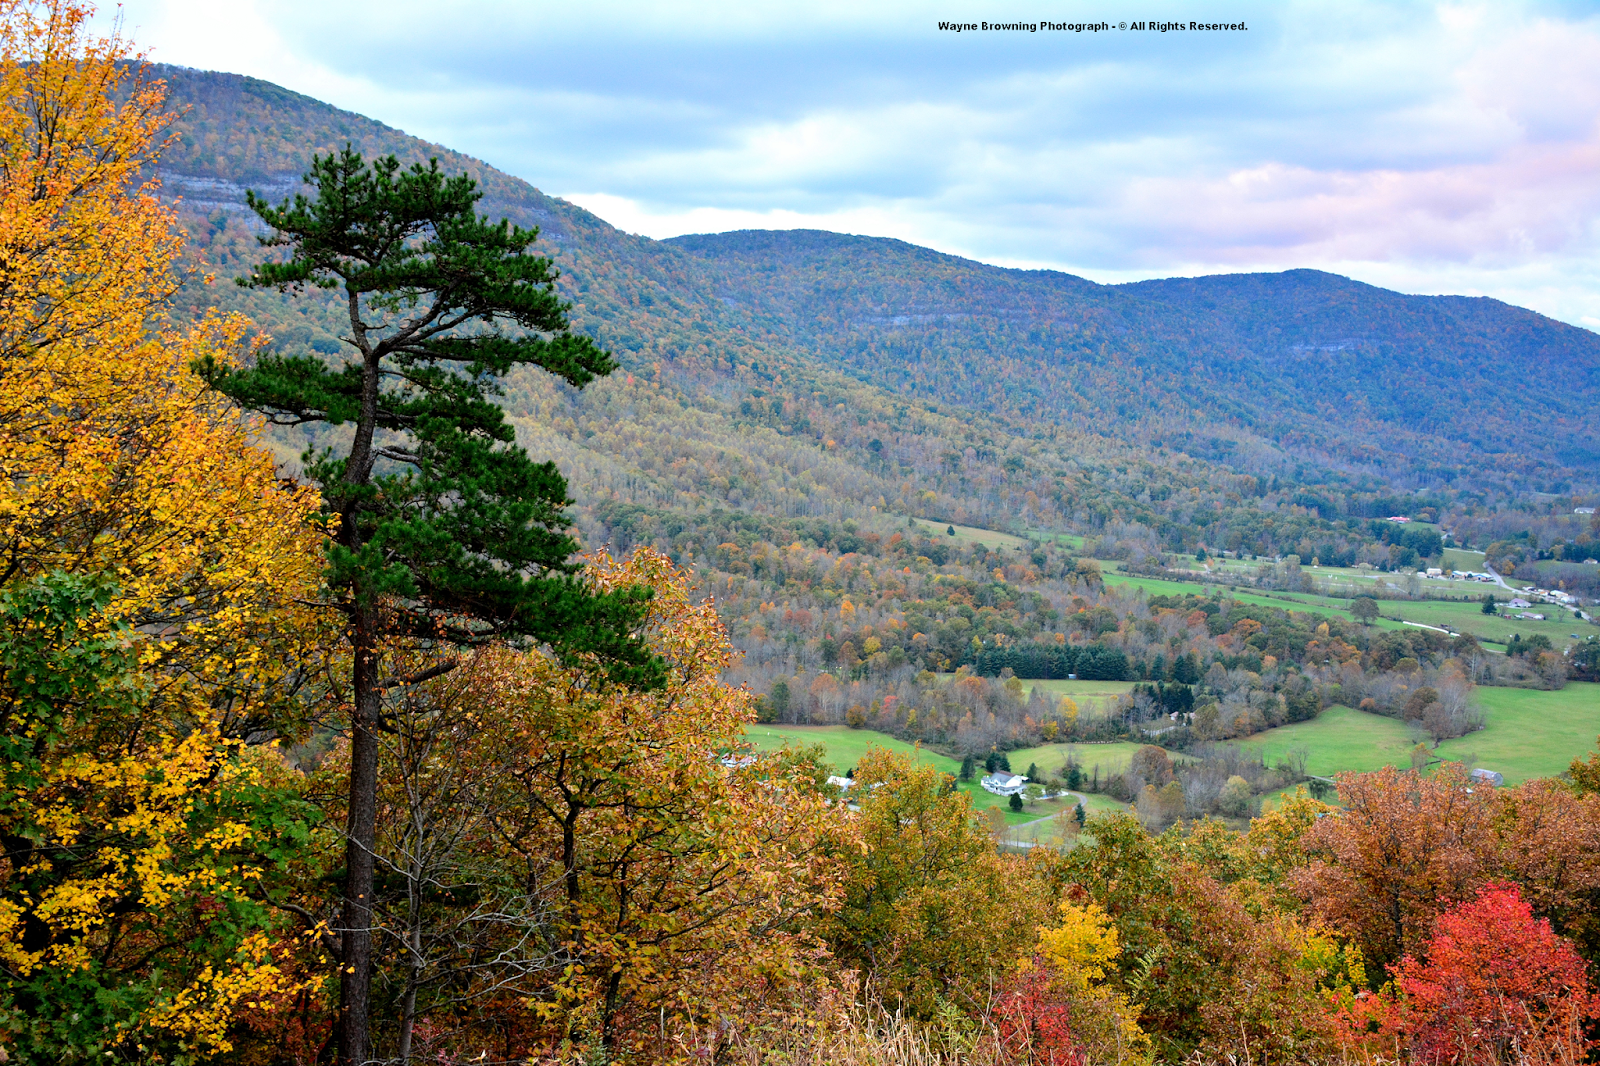 The High Knob Landform: More Autumn Color Photographs In 2014